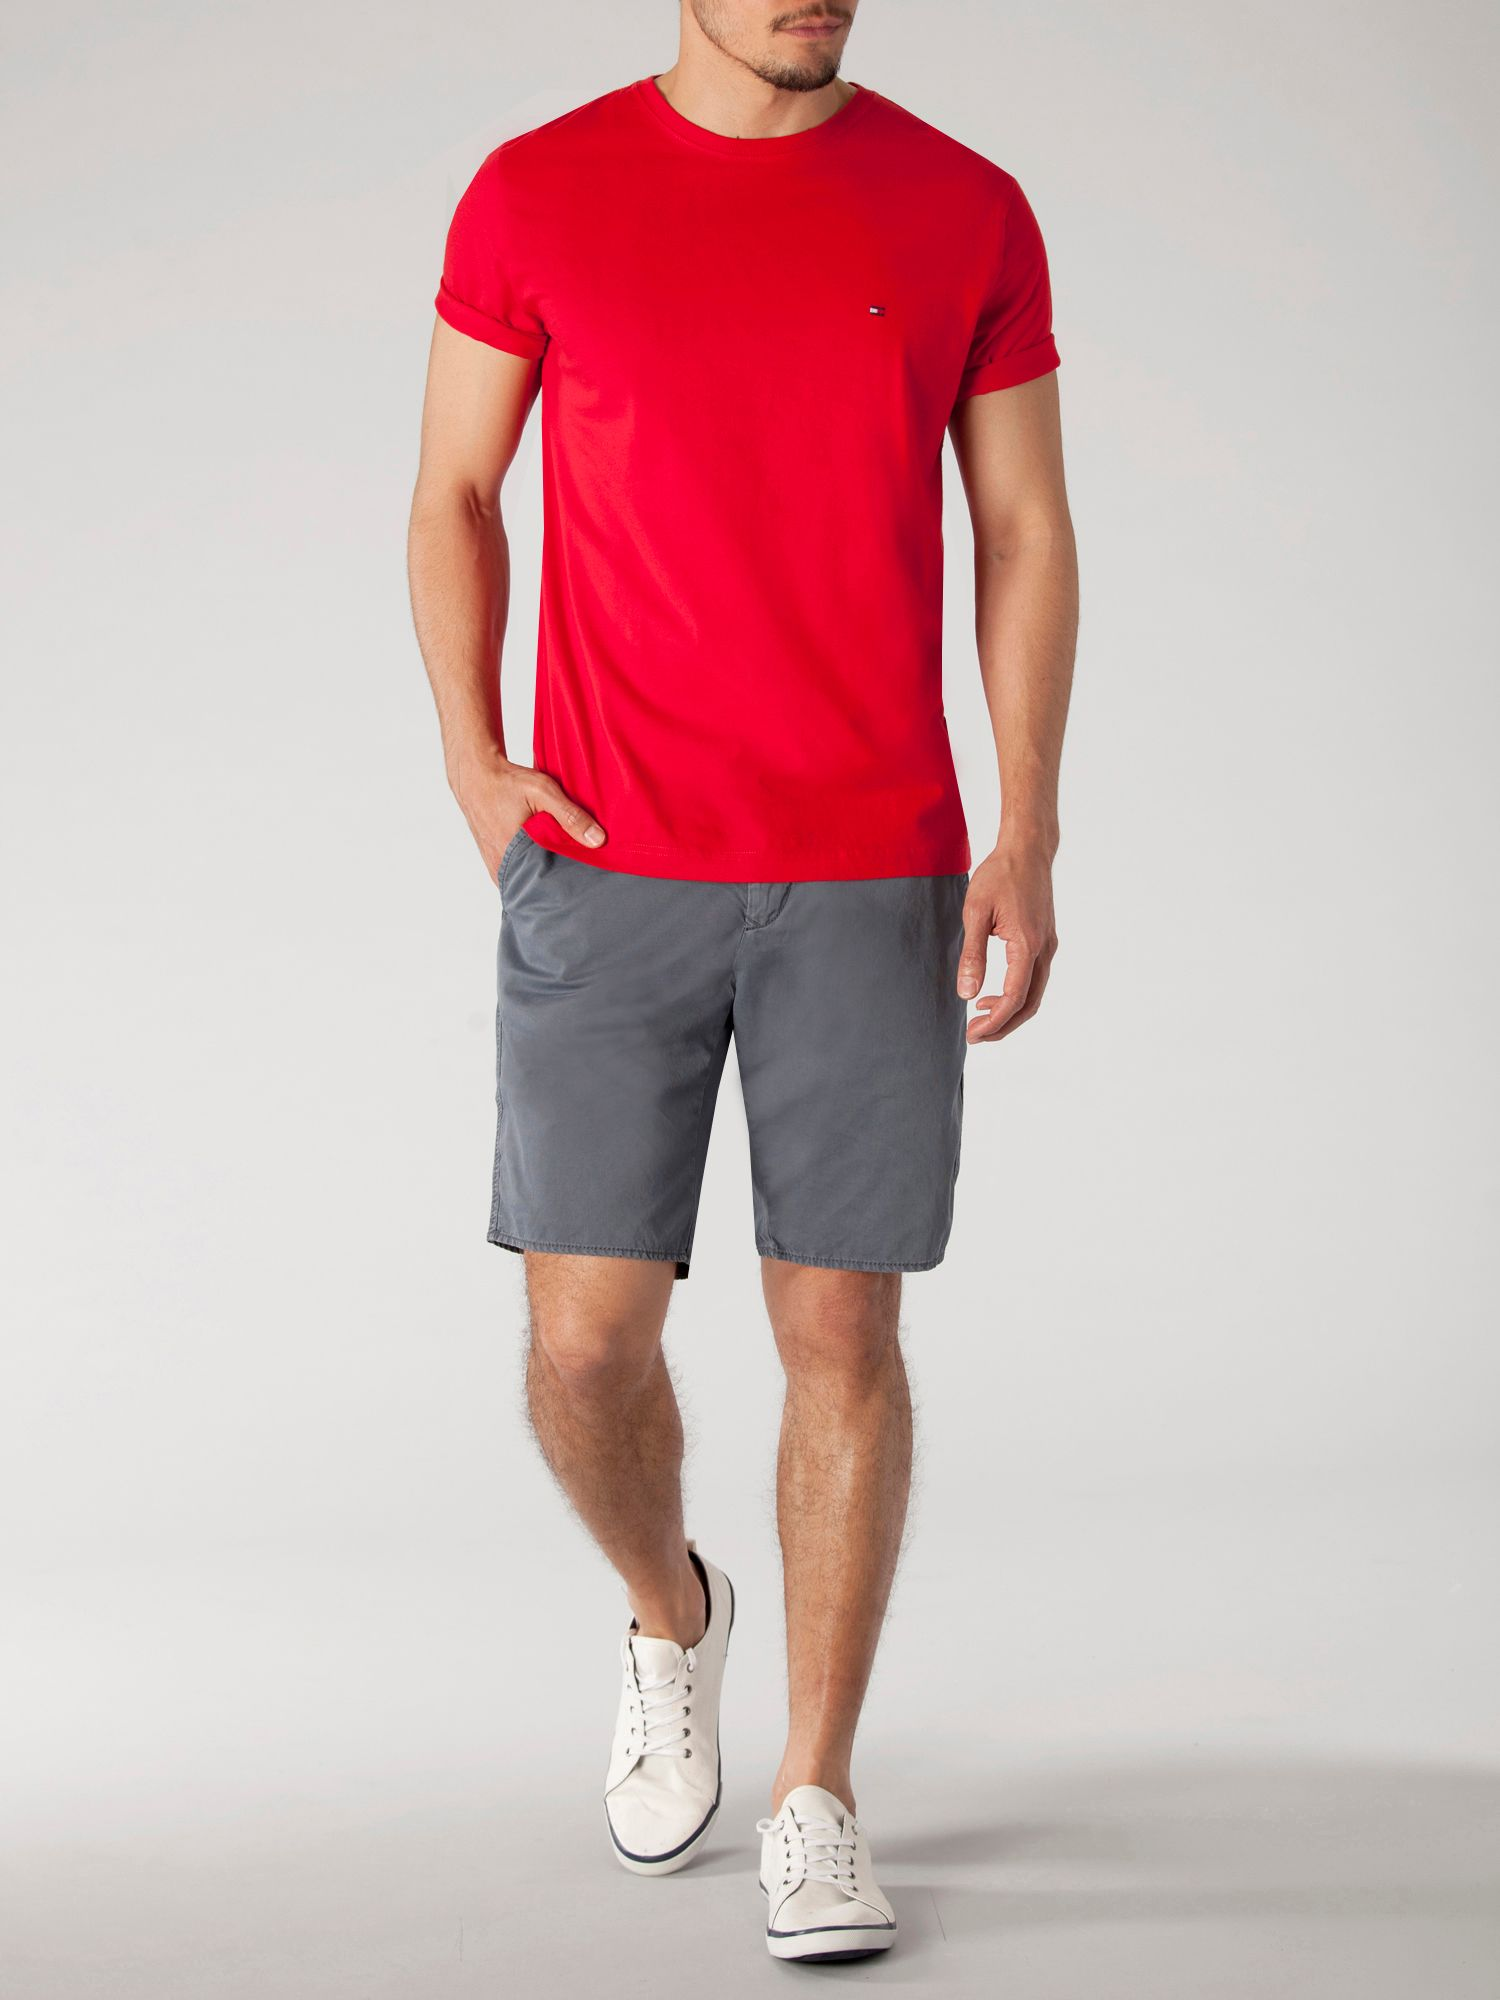 Flag crew neck short sleeve t-shirt